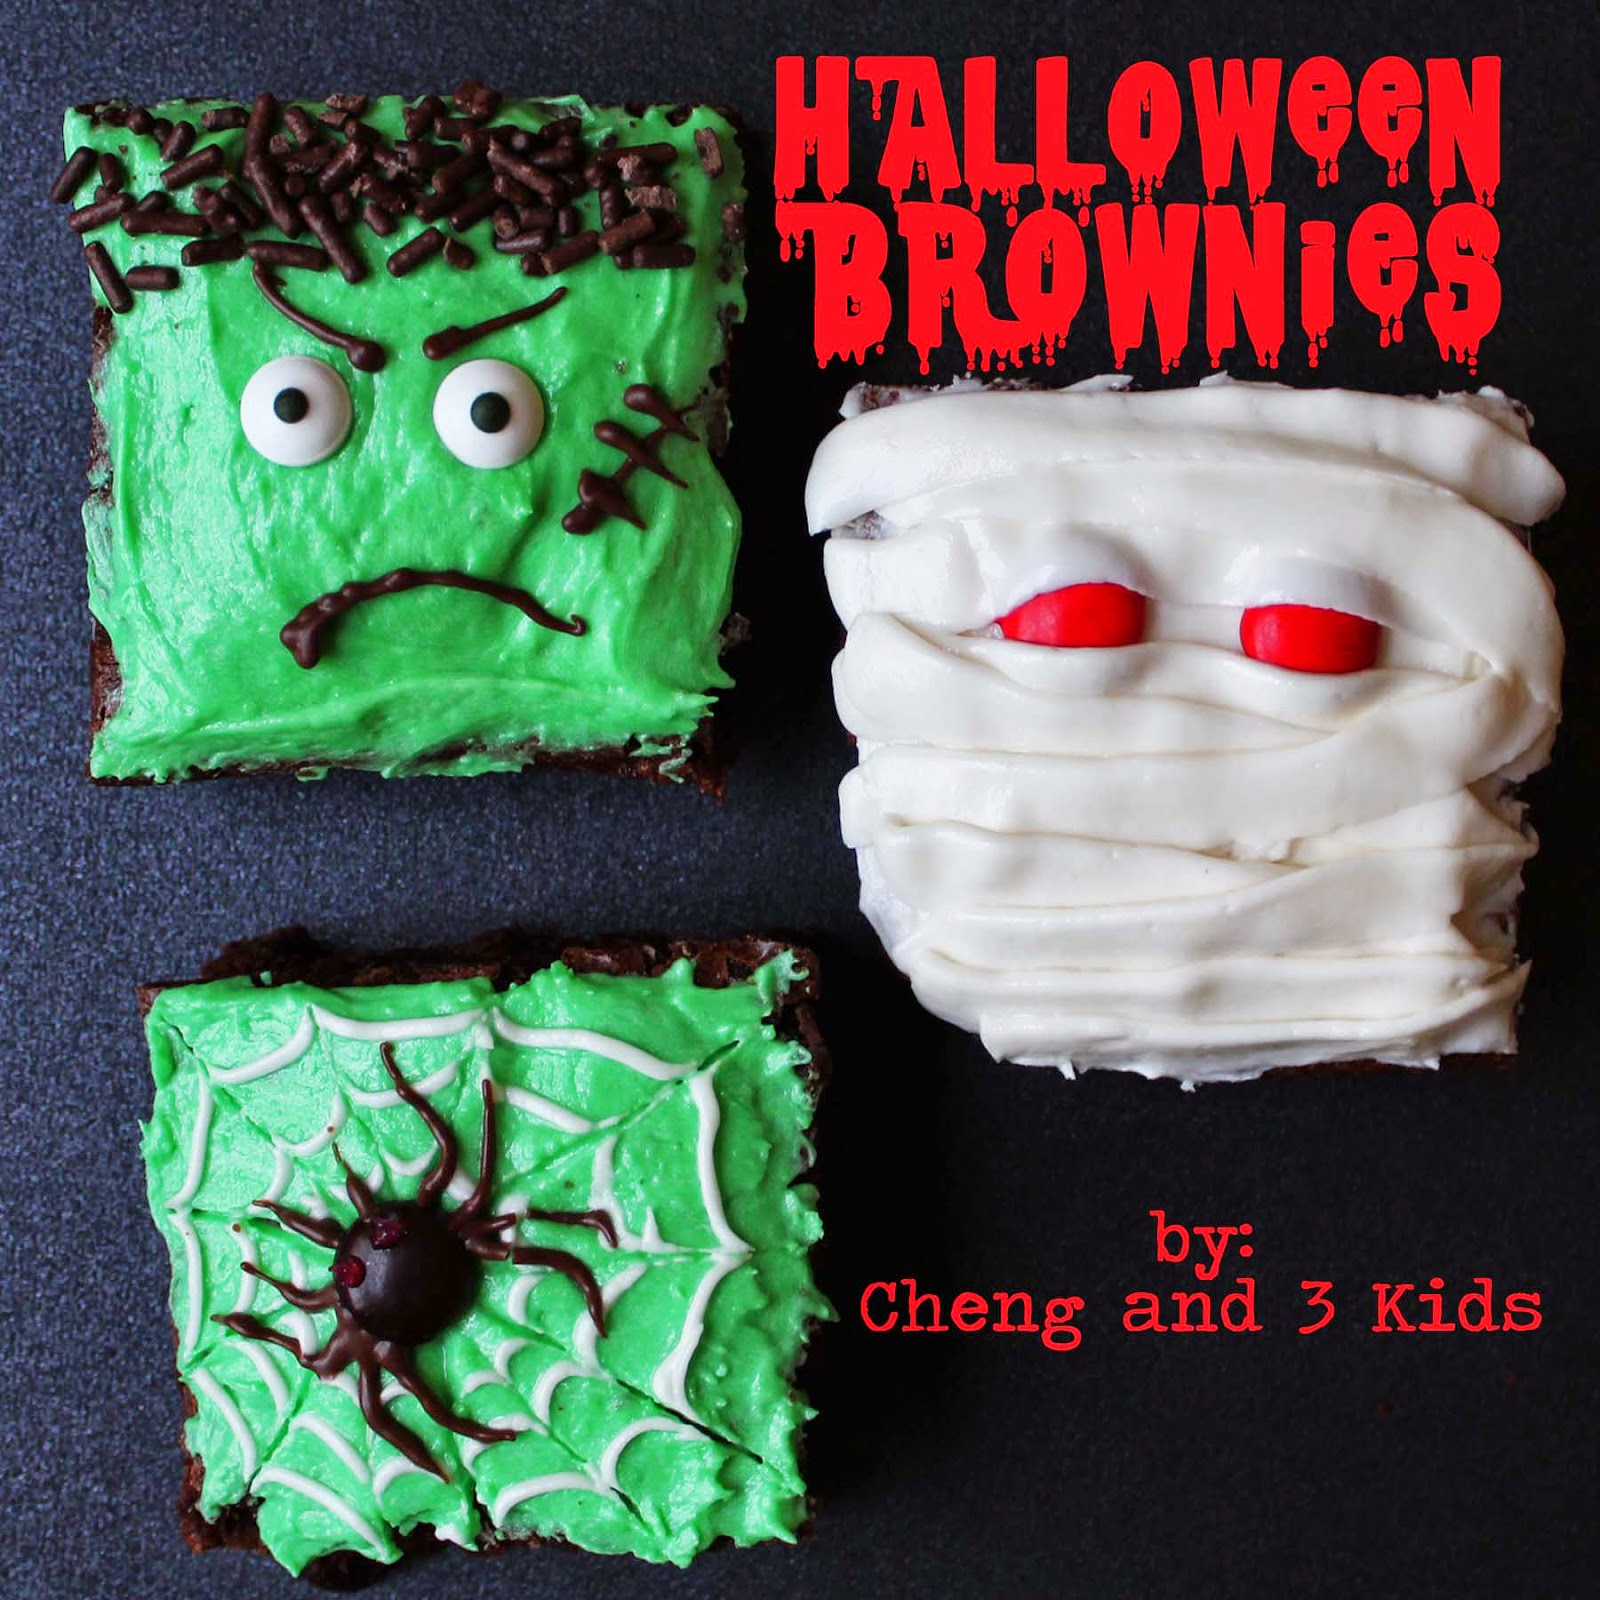 Halloween Brownies by Cheng and 3 Kids